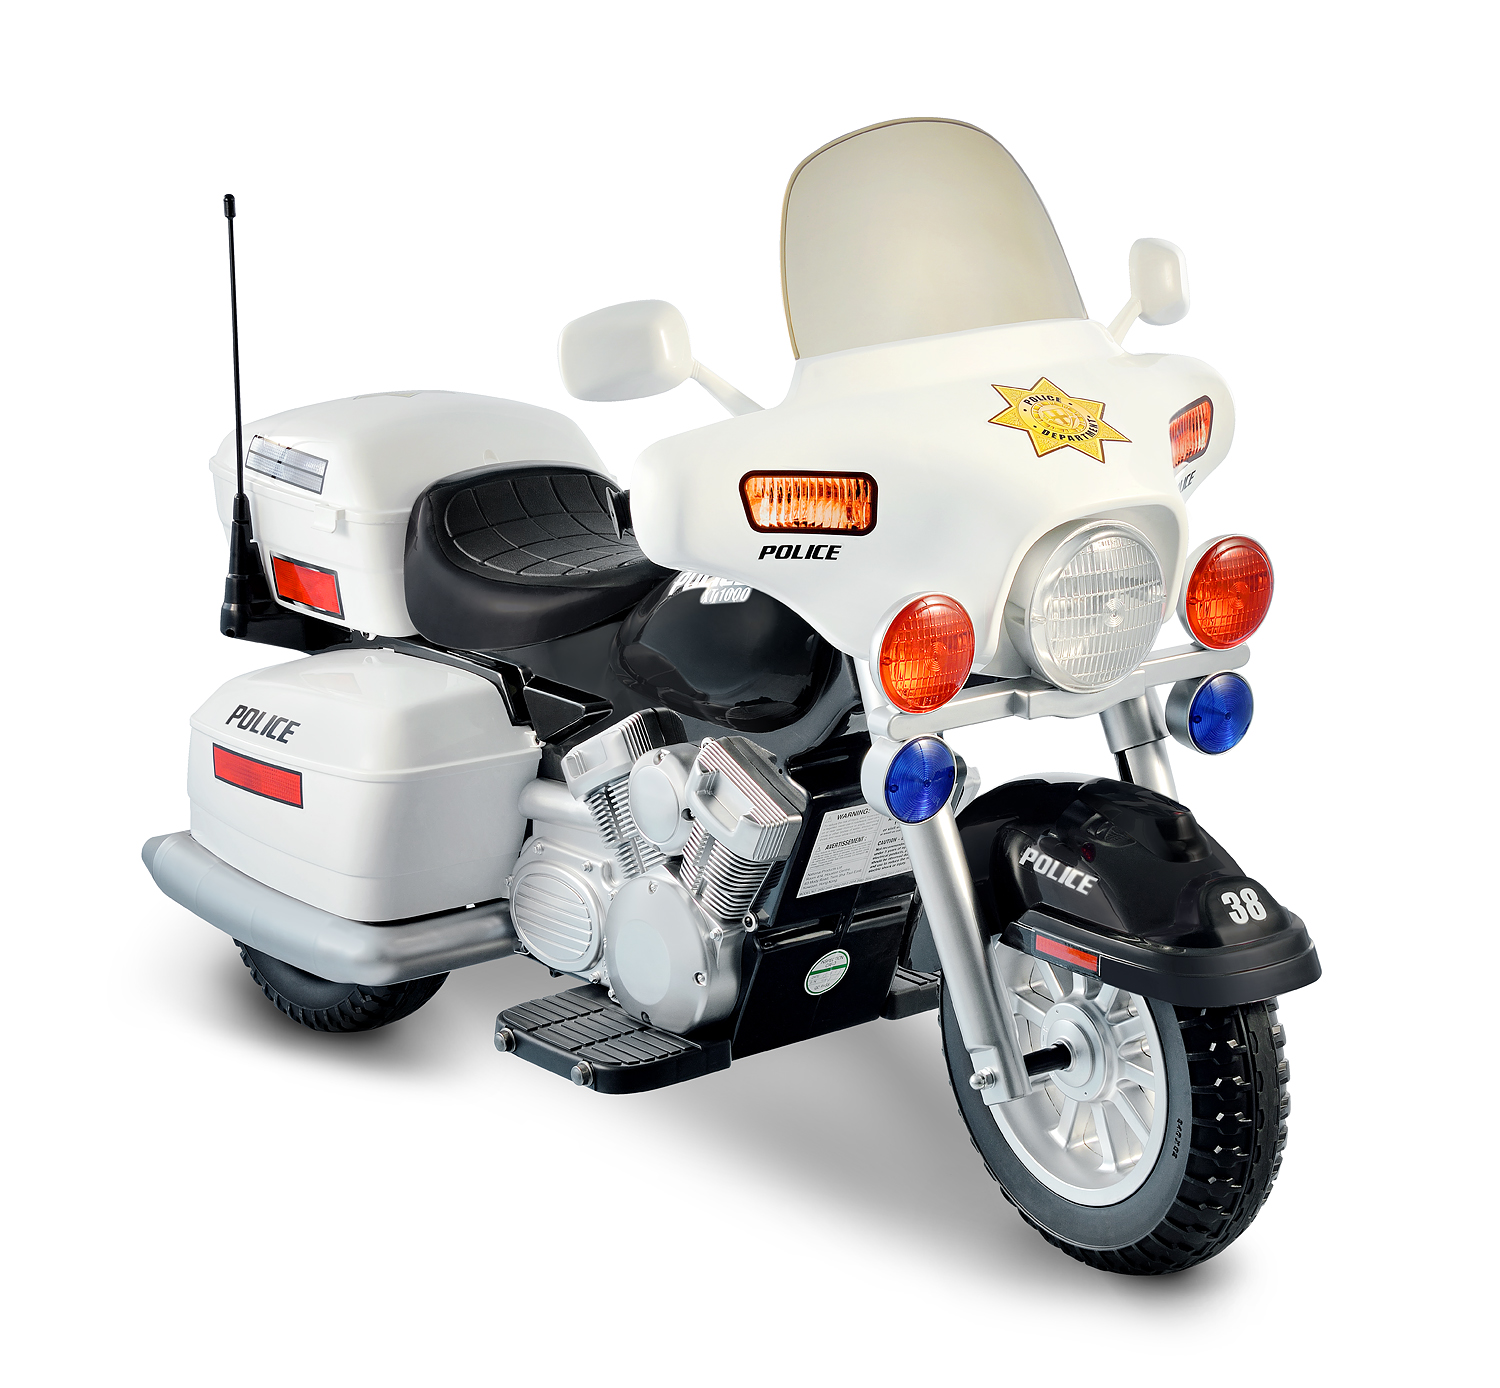 Click here to buy Kid Motorz Police Motorcycle 12-Volt Battery-Powered Ride-On, White by National Products Limited.